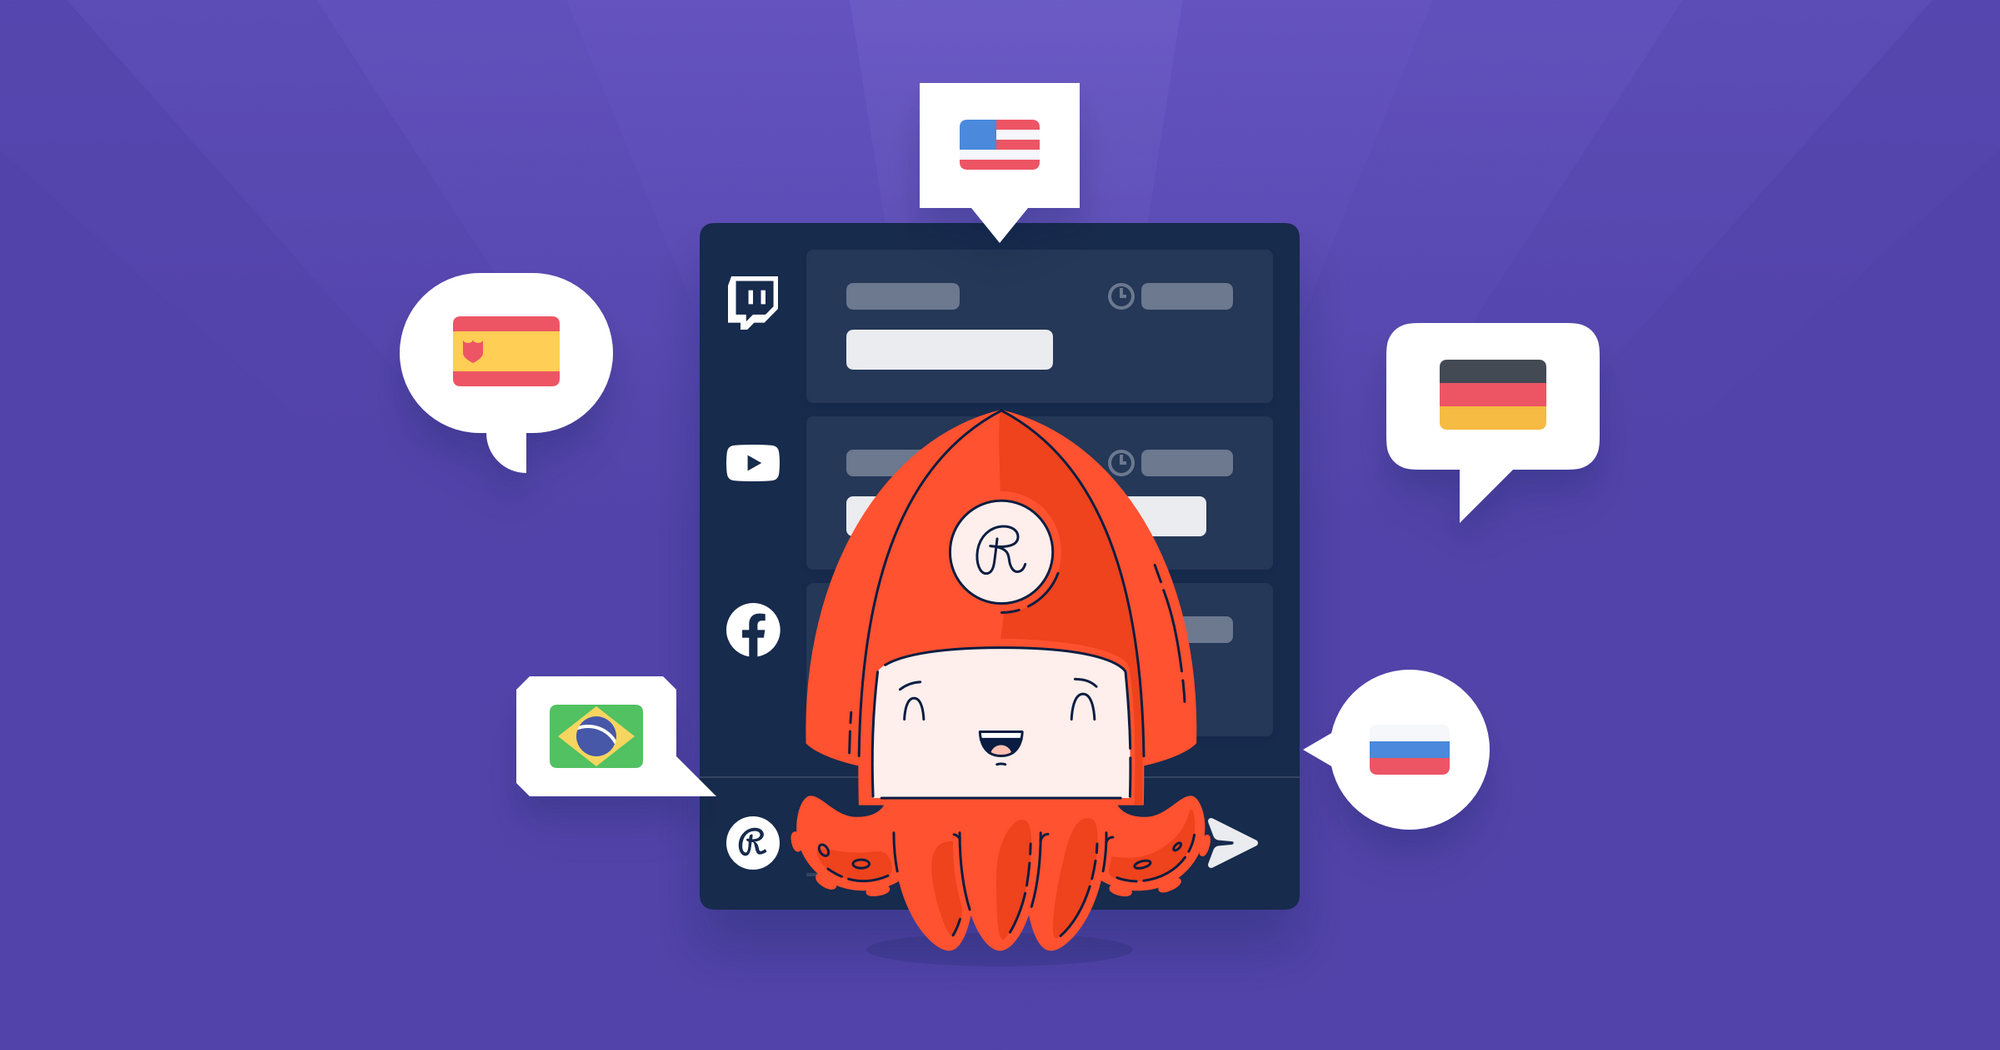 Restream Chat now supports five languages: English, Russian, Portuguese, Spanish, and German